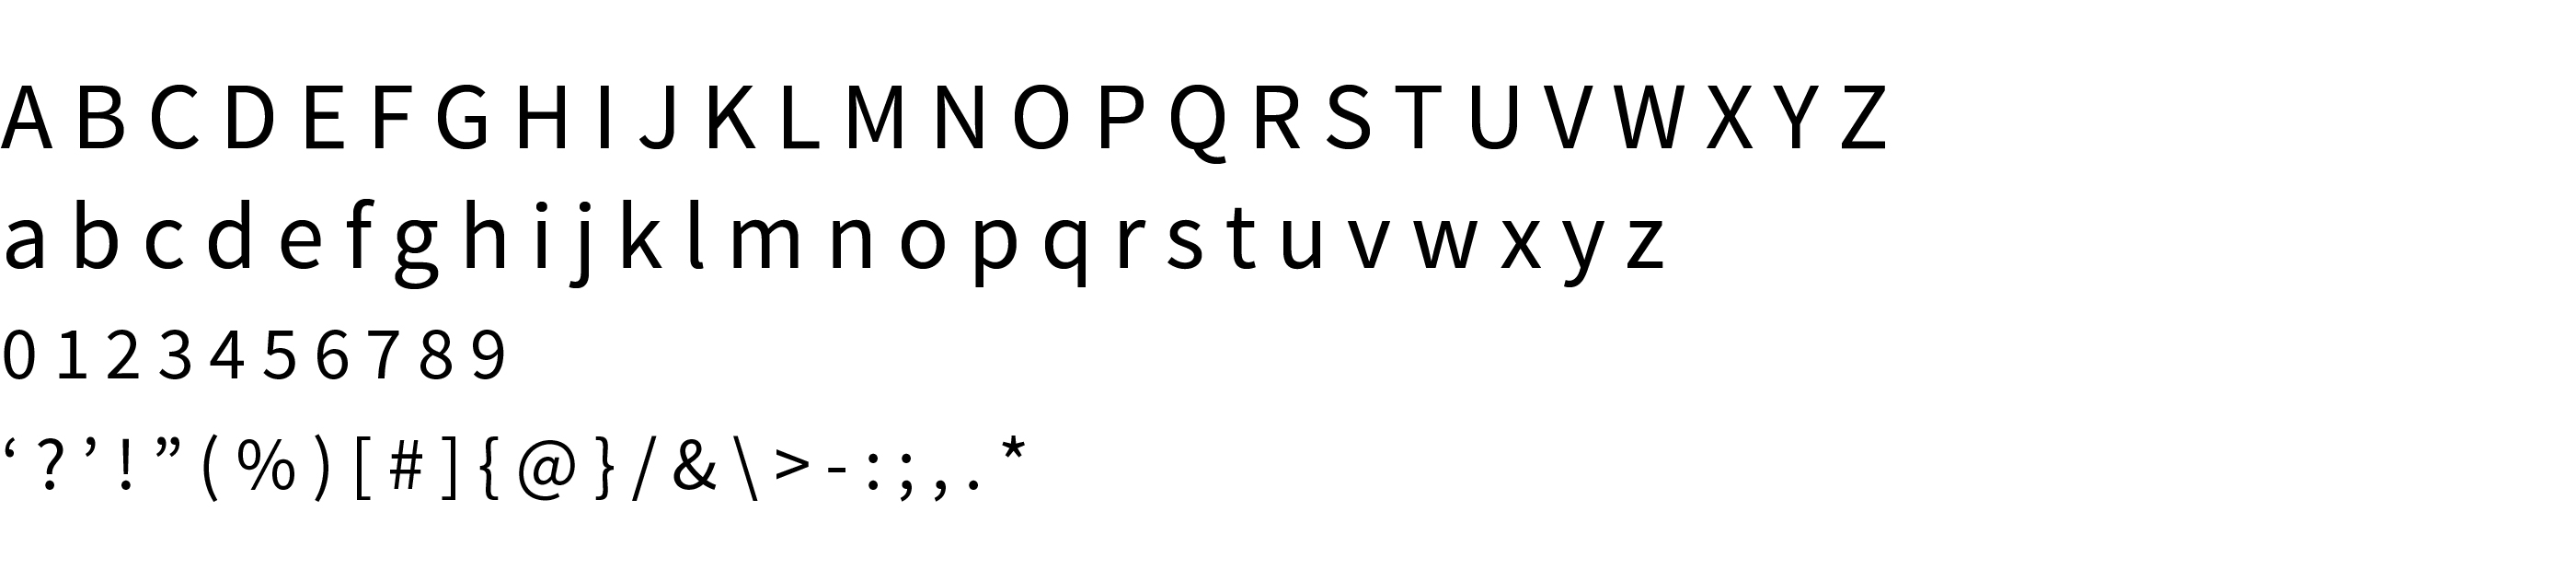 Type Specimen Source Sans Pro Regular